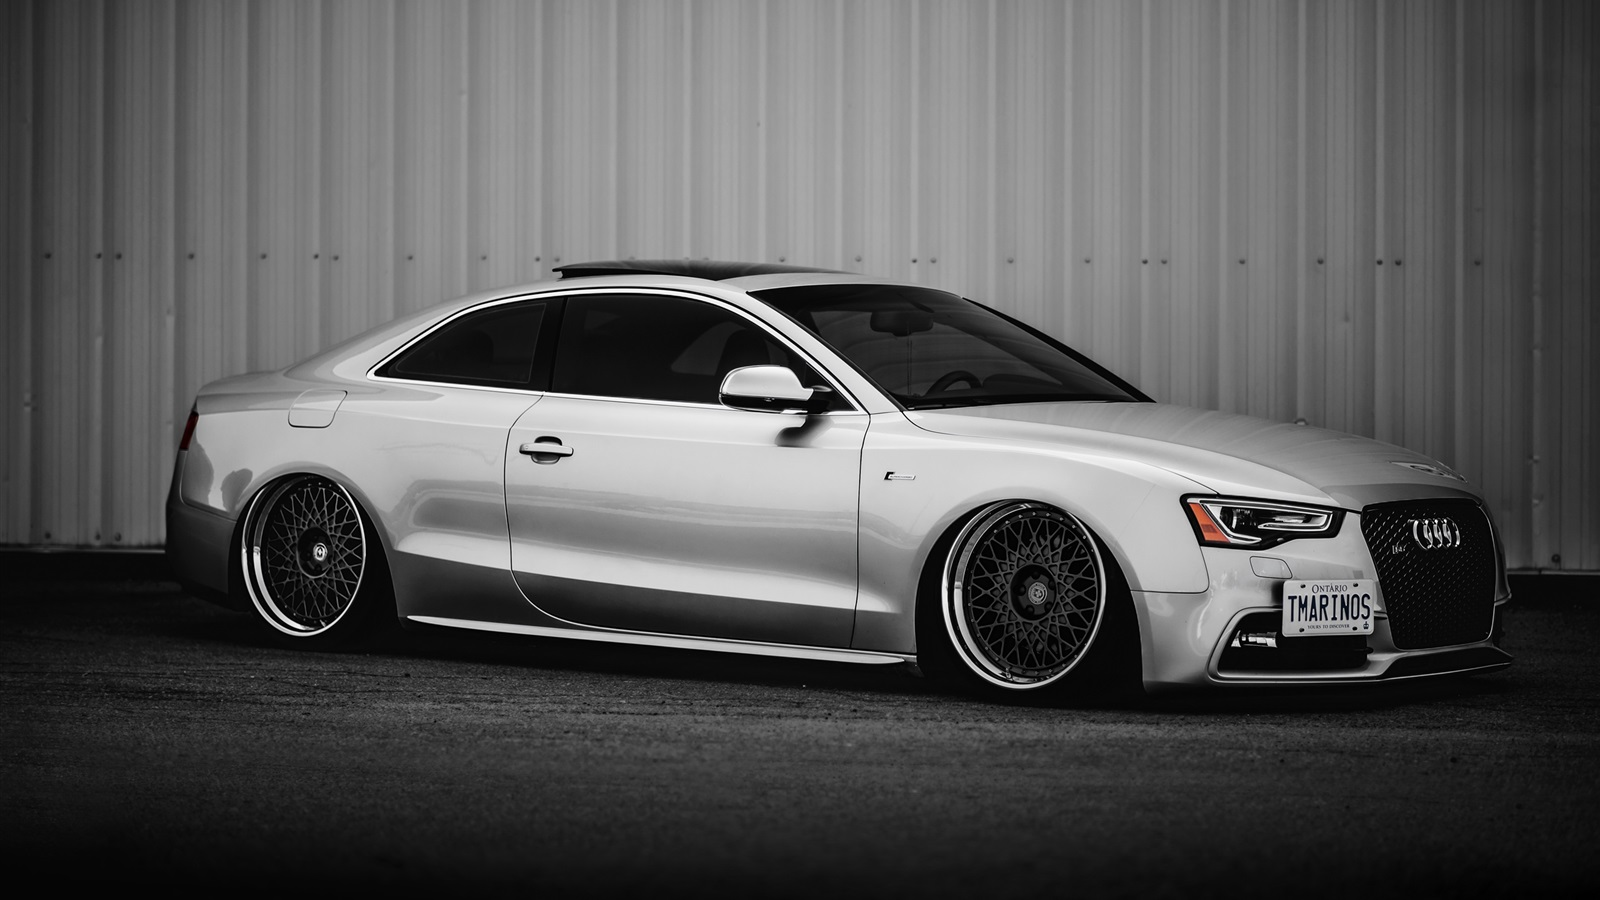 Audi s5 voiture d 39 argent vue de c t fonds d 39 cran 1600x900 fonds d 39 cran de t l chargement - Best wallpapers for s5 ...